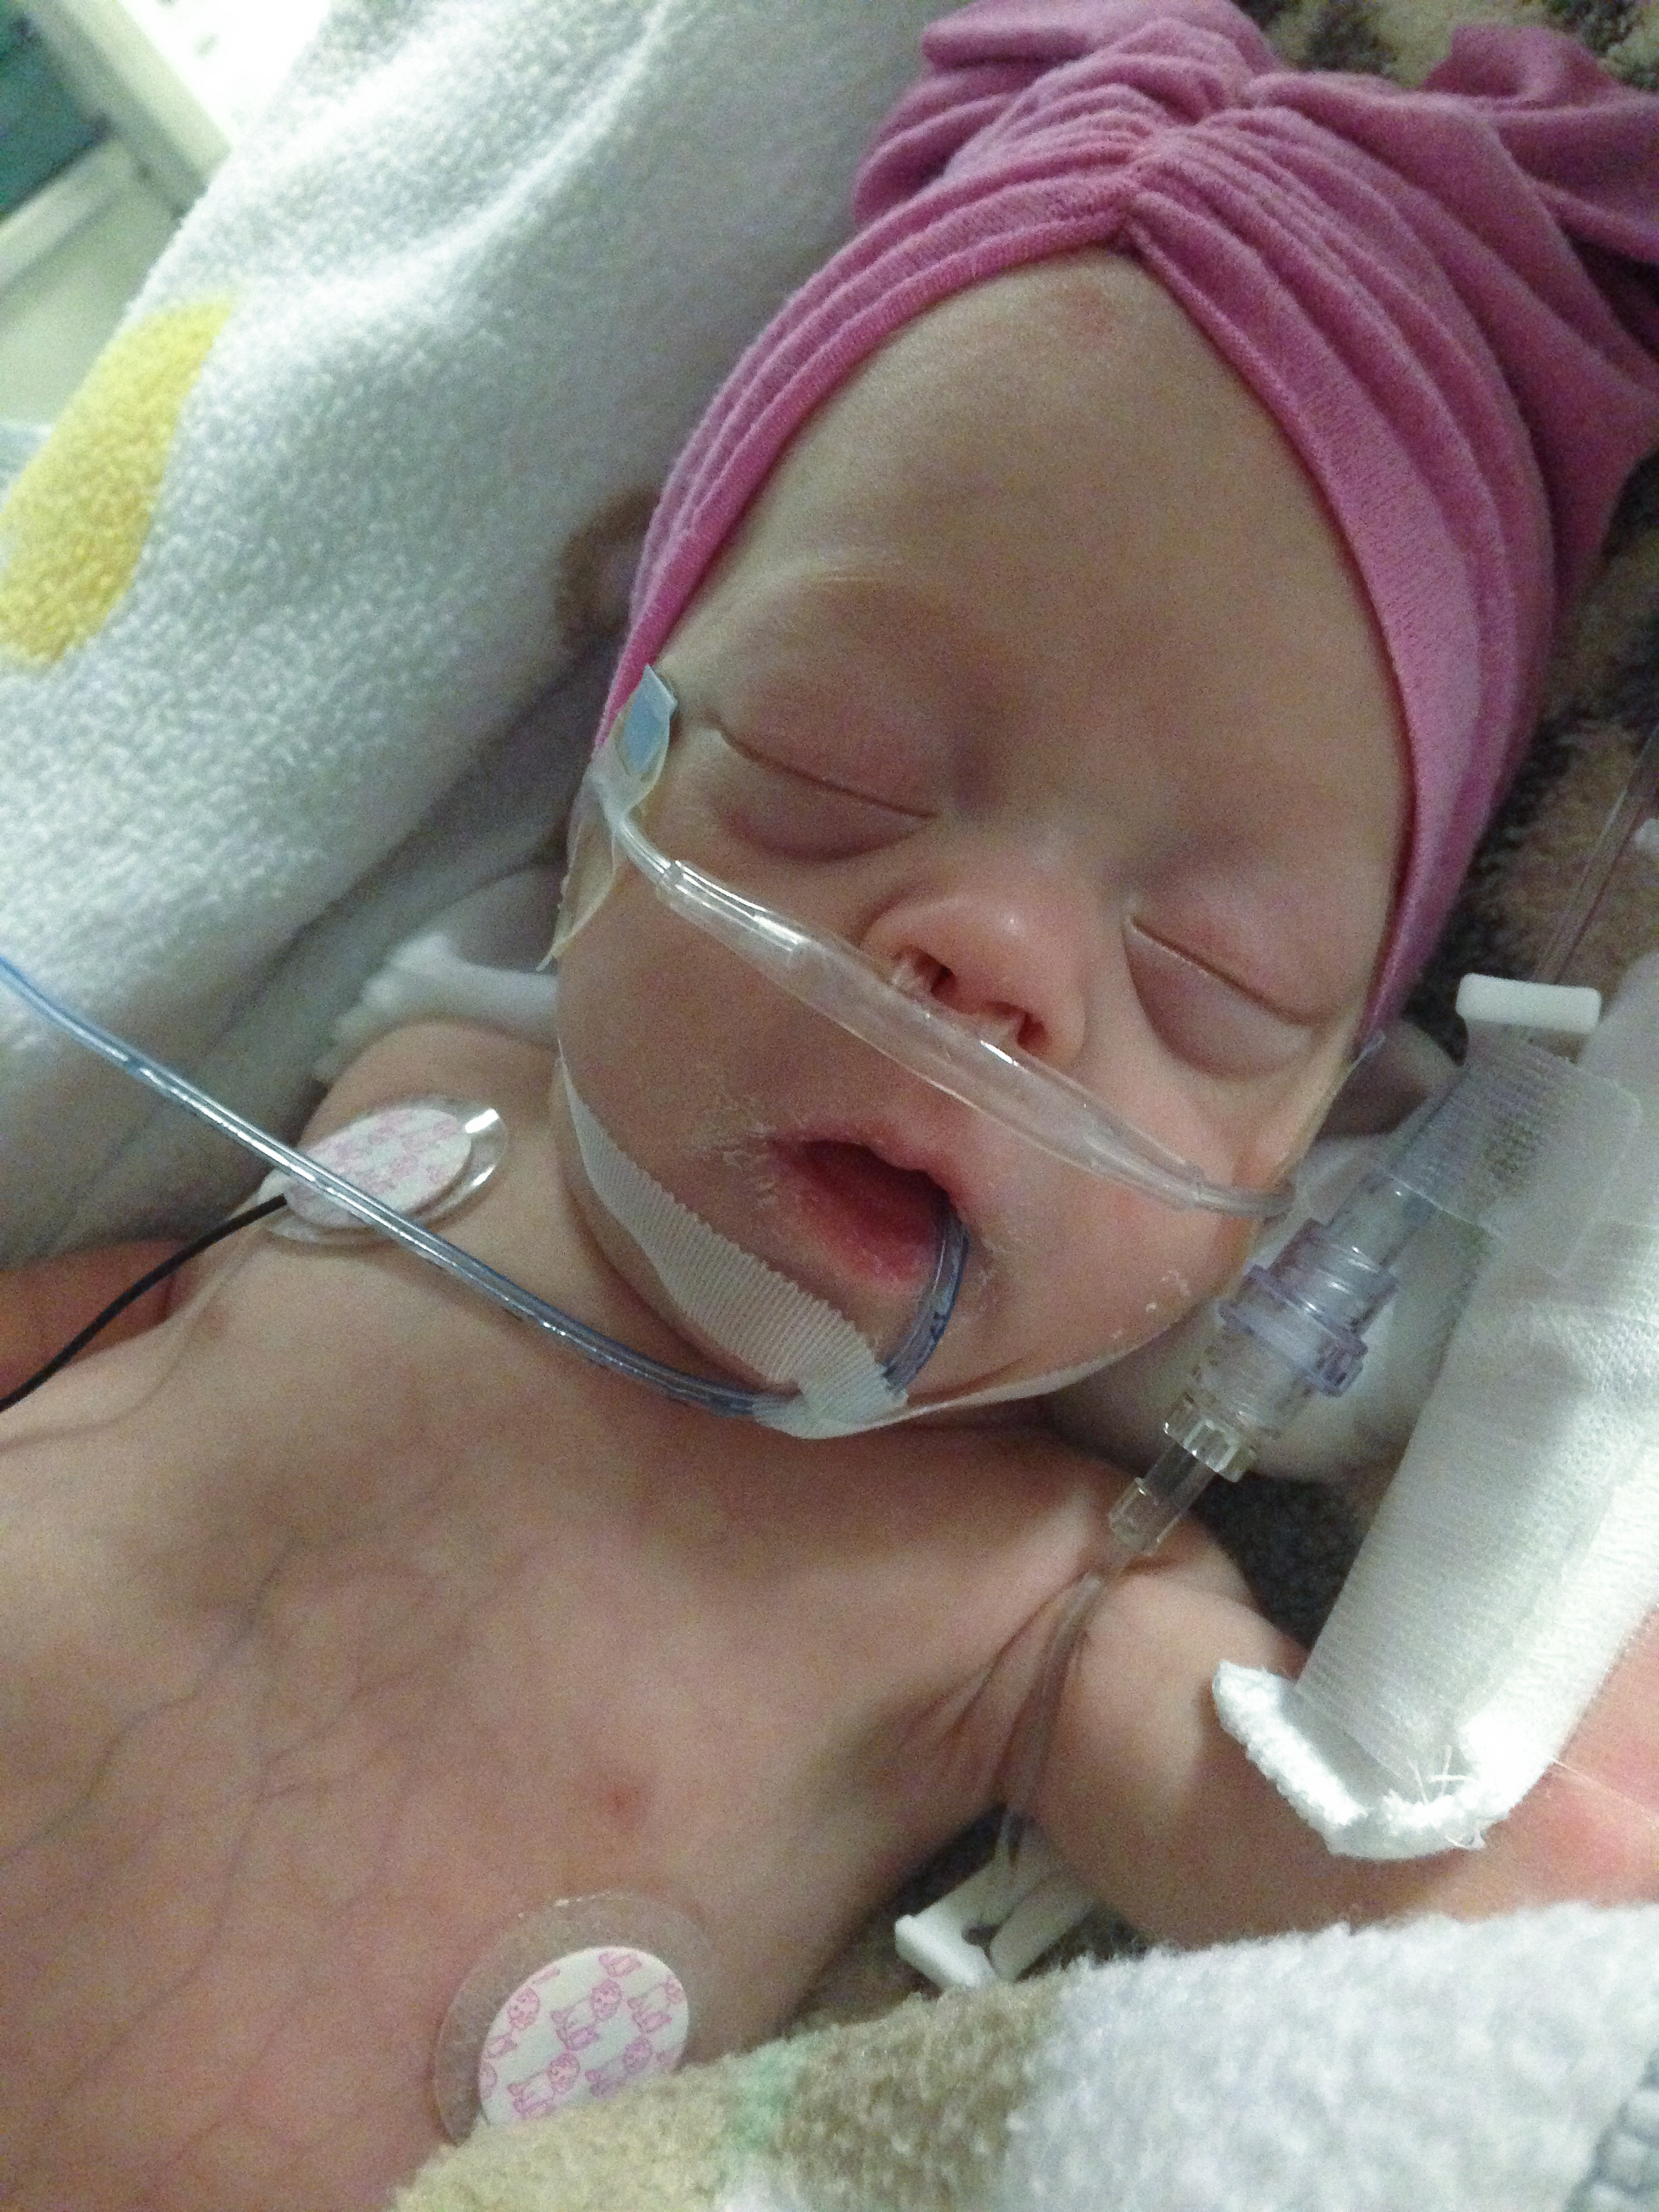 addie belle - diary of a NICU dad - day 79 - shegotguts.com-1-19.jpg